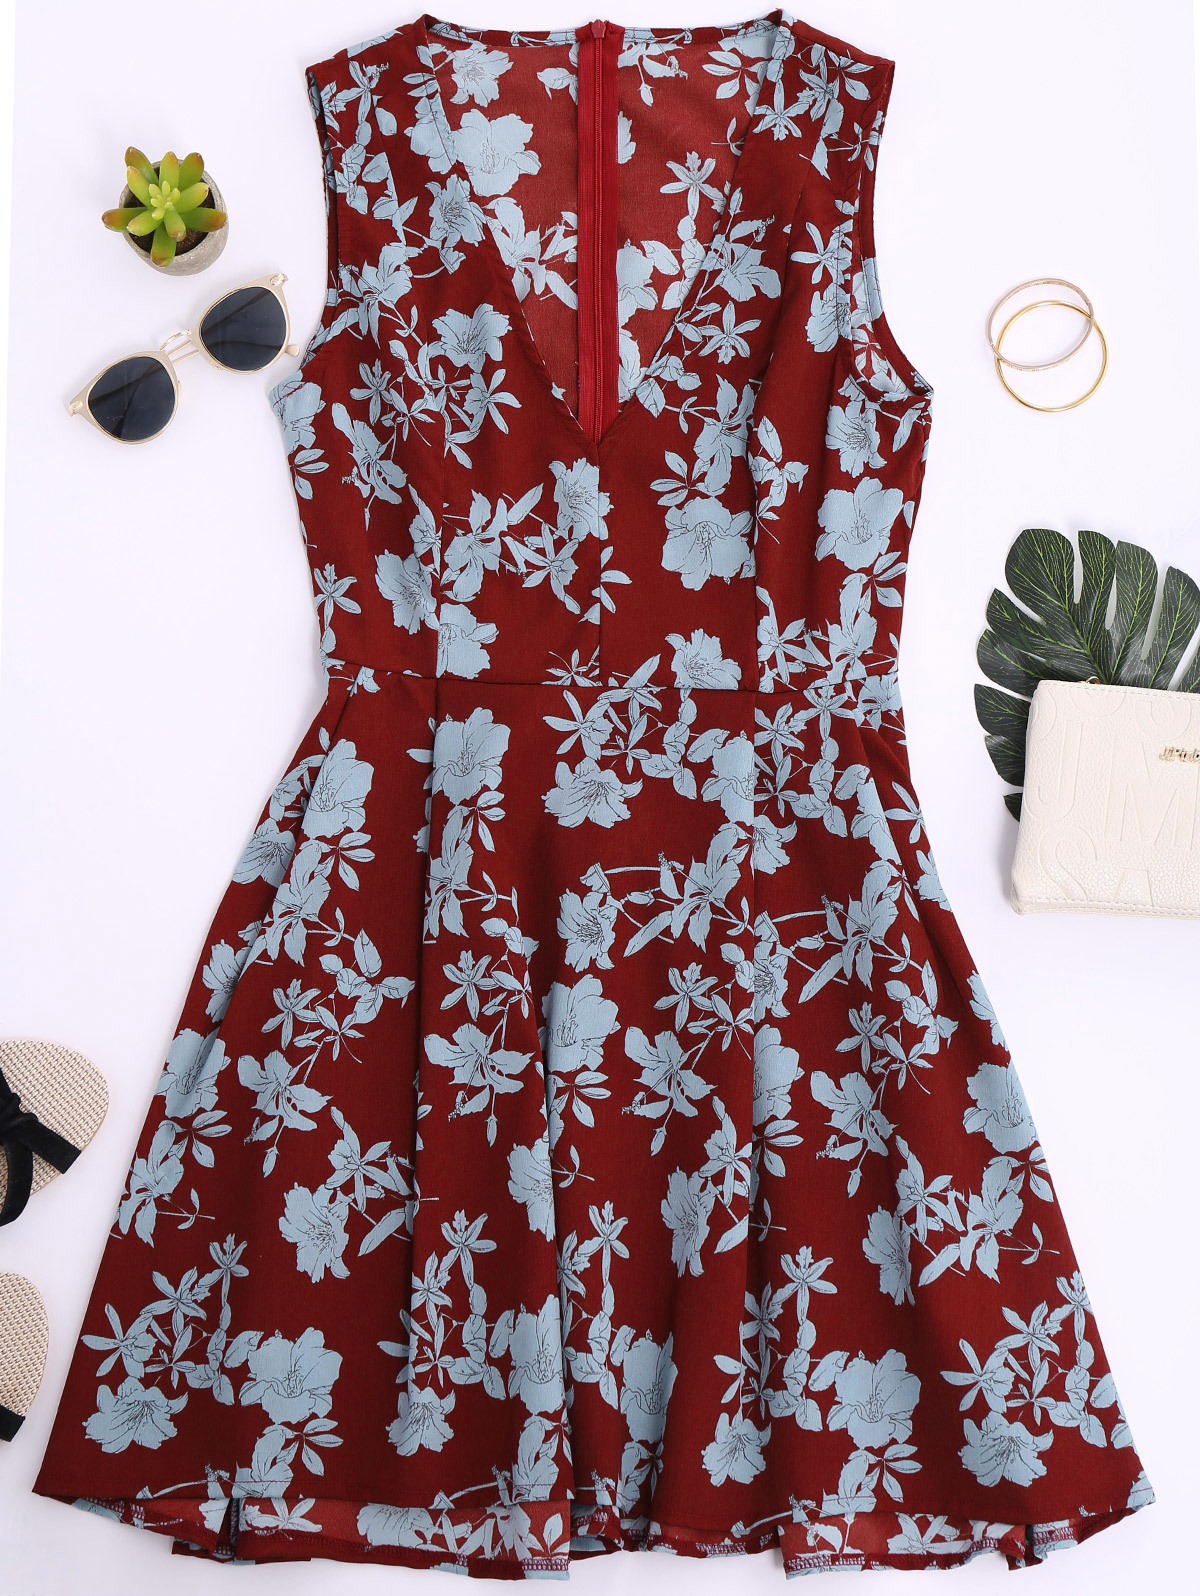 GUMPRUN Women Sexy V Neck Sleeveless Mini Summer Dress 2018 Boho Floral Print Dresses Vestidos Female Beach Casual Short Dress 12